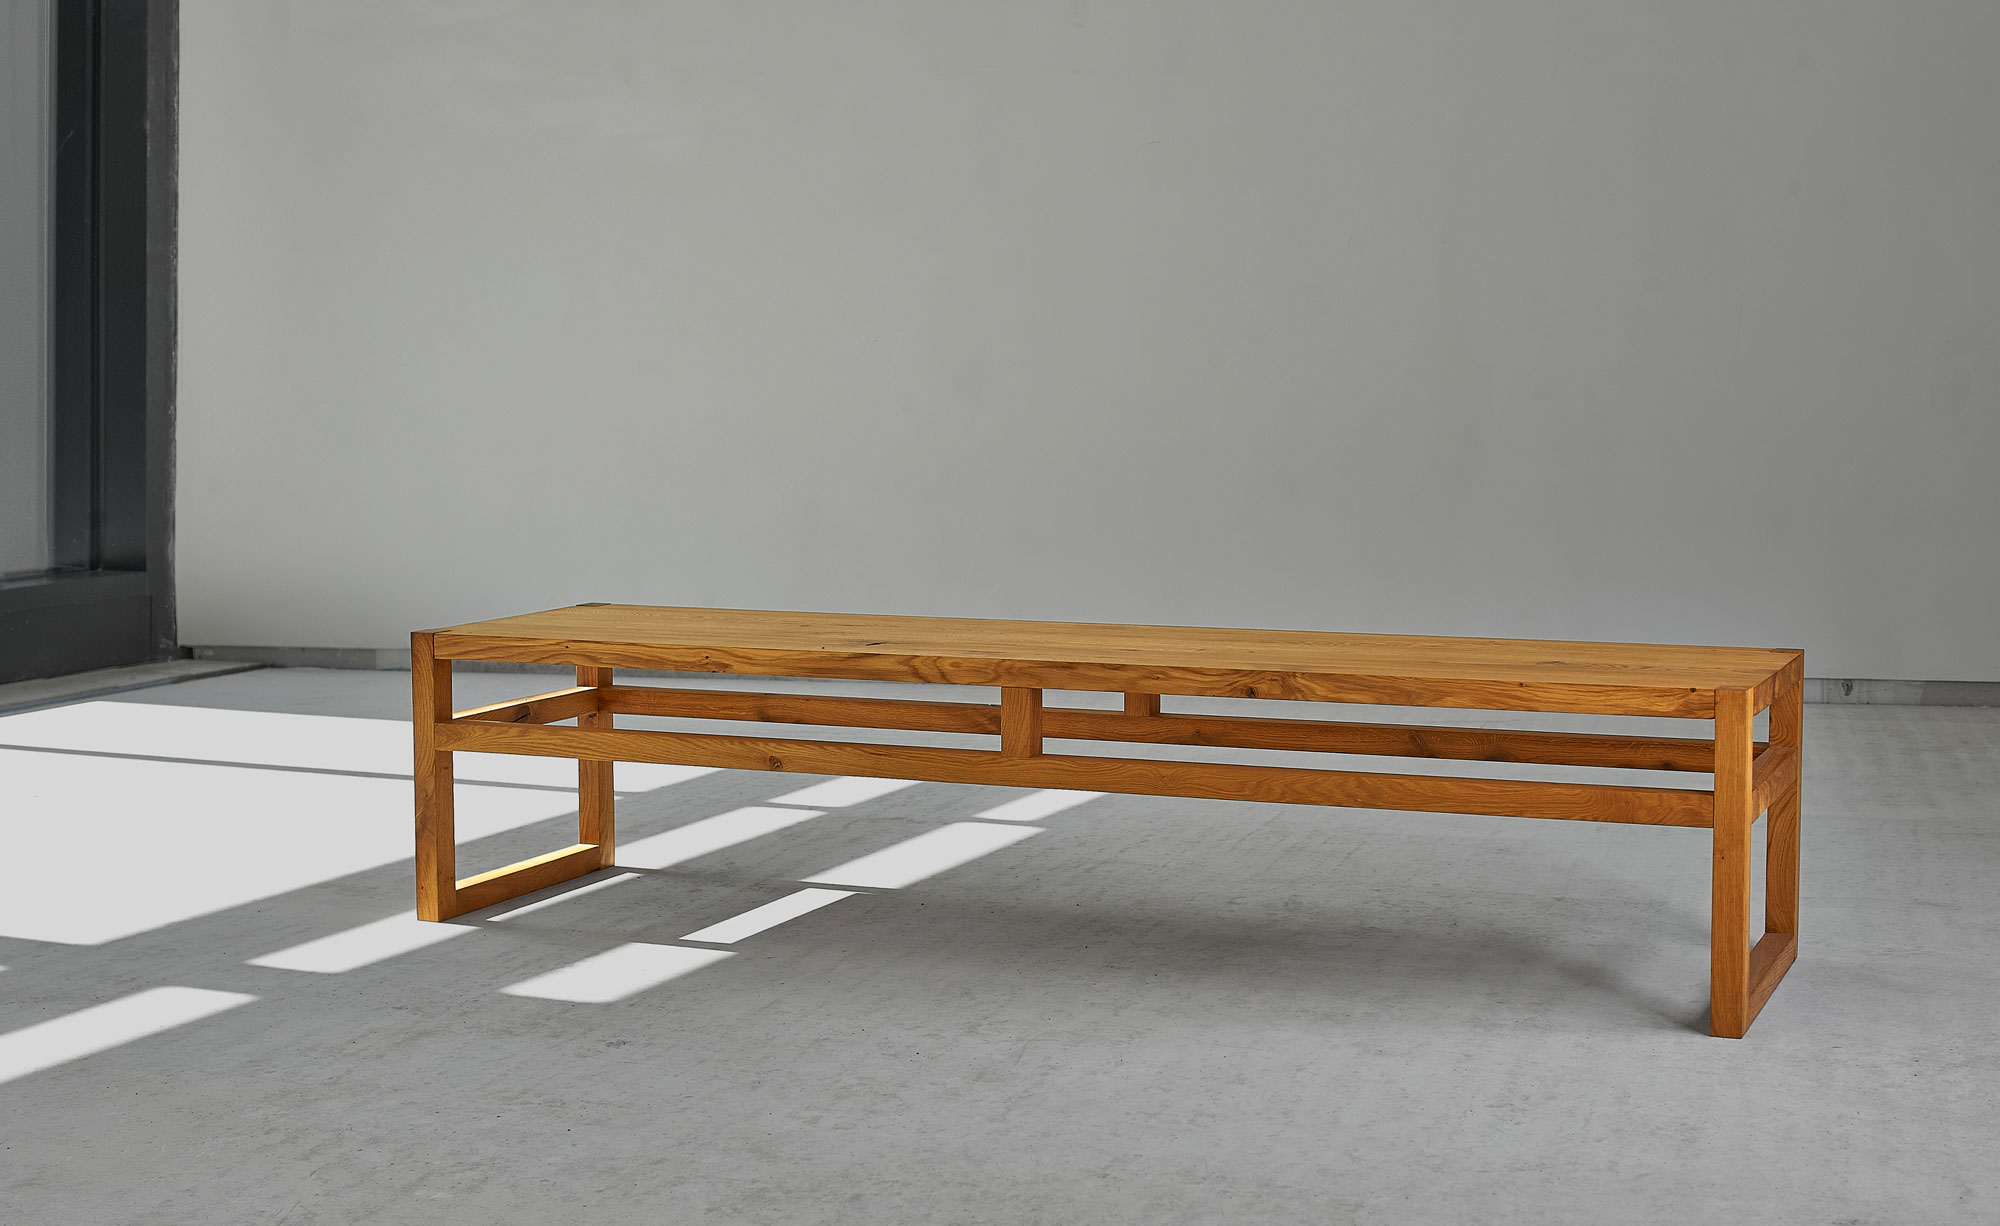 Dining Room Wood Bench SENA 00154 custom made in solid wood by vitamin design